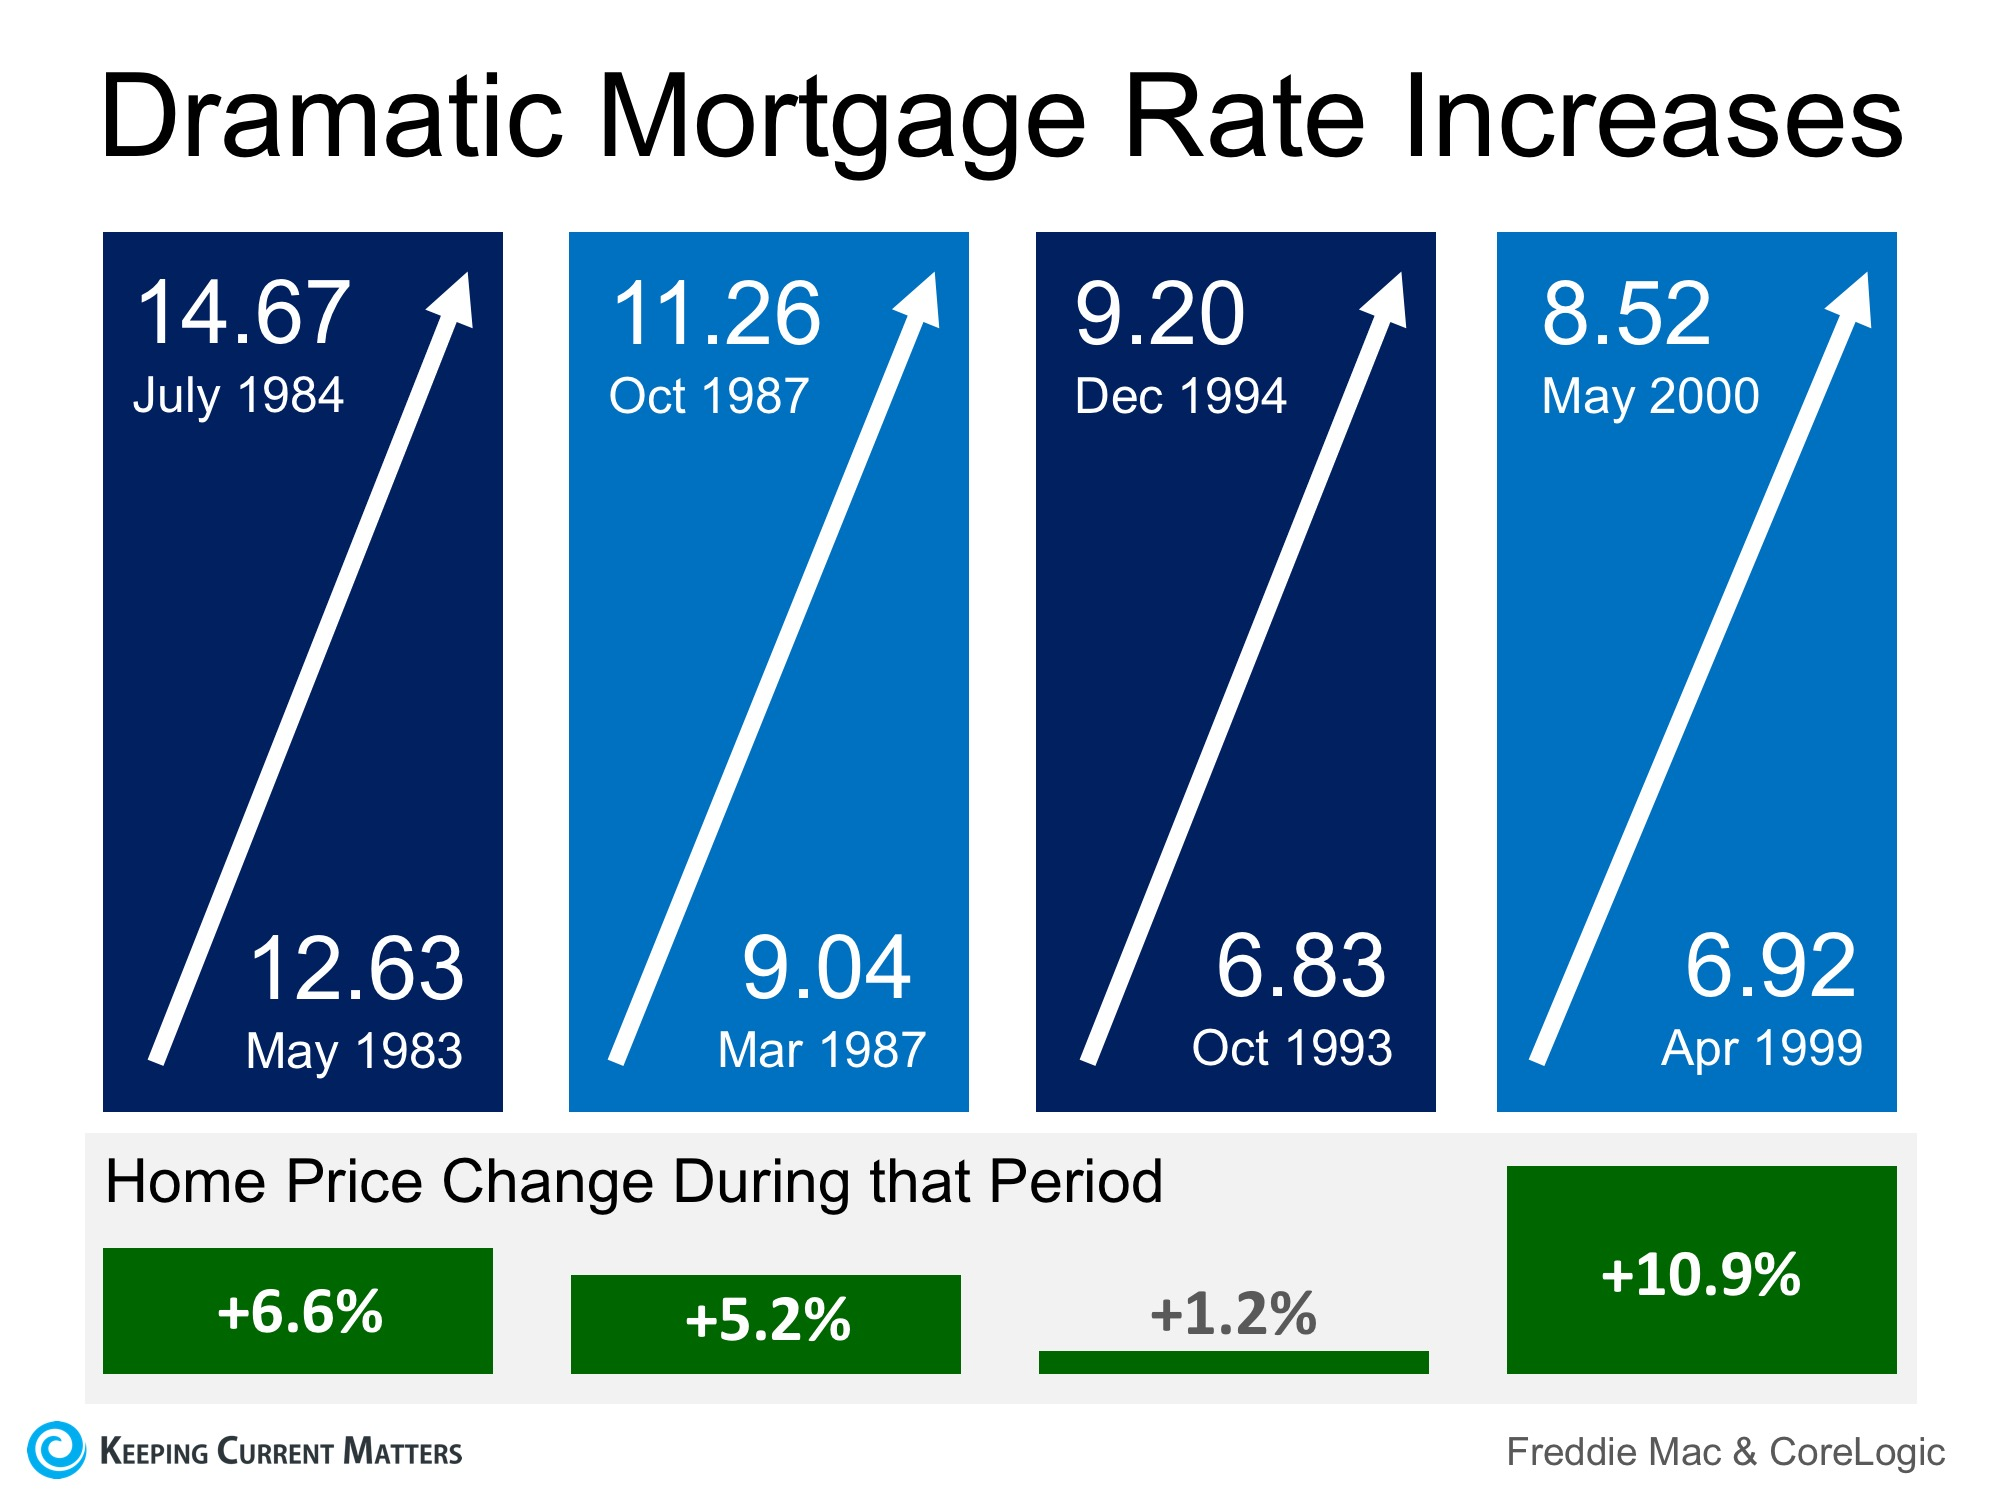 Mortgage Rates on FIRE! Home Prices Up in Smoke? | Keeping Current Matters